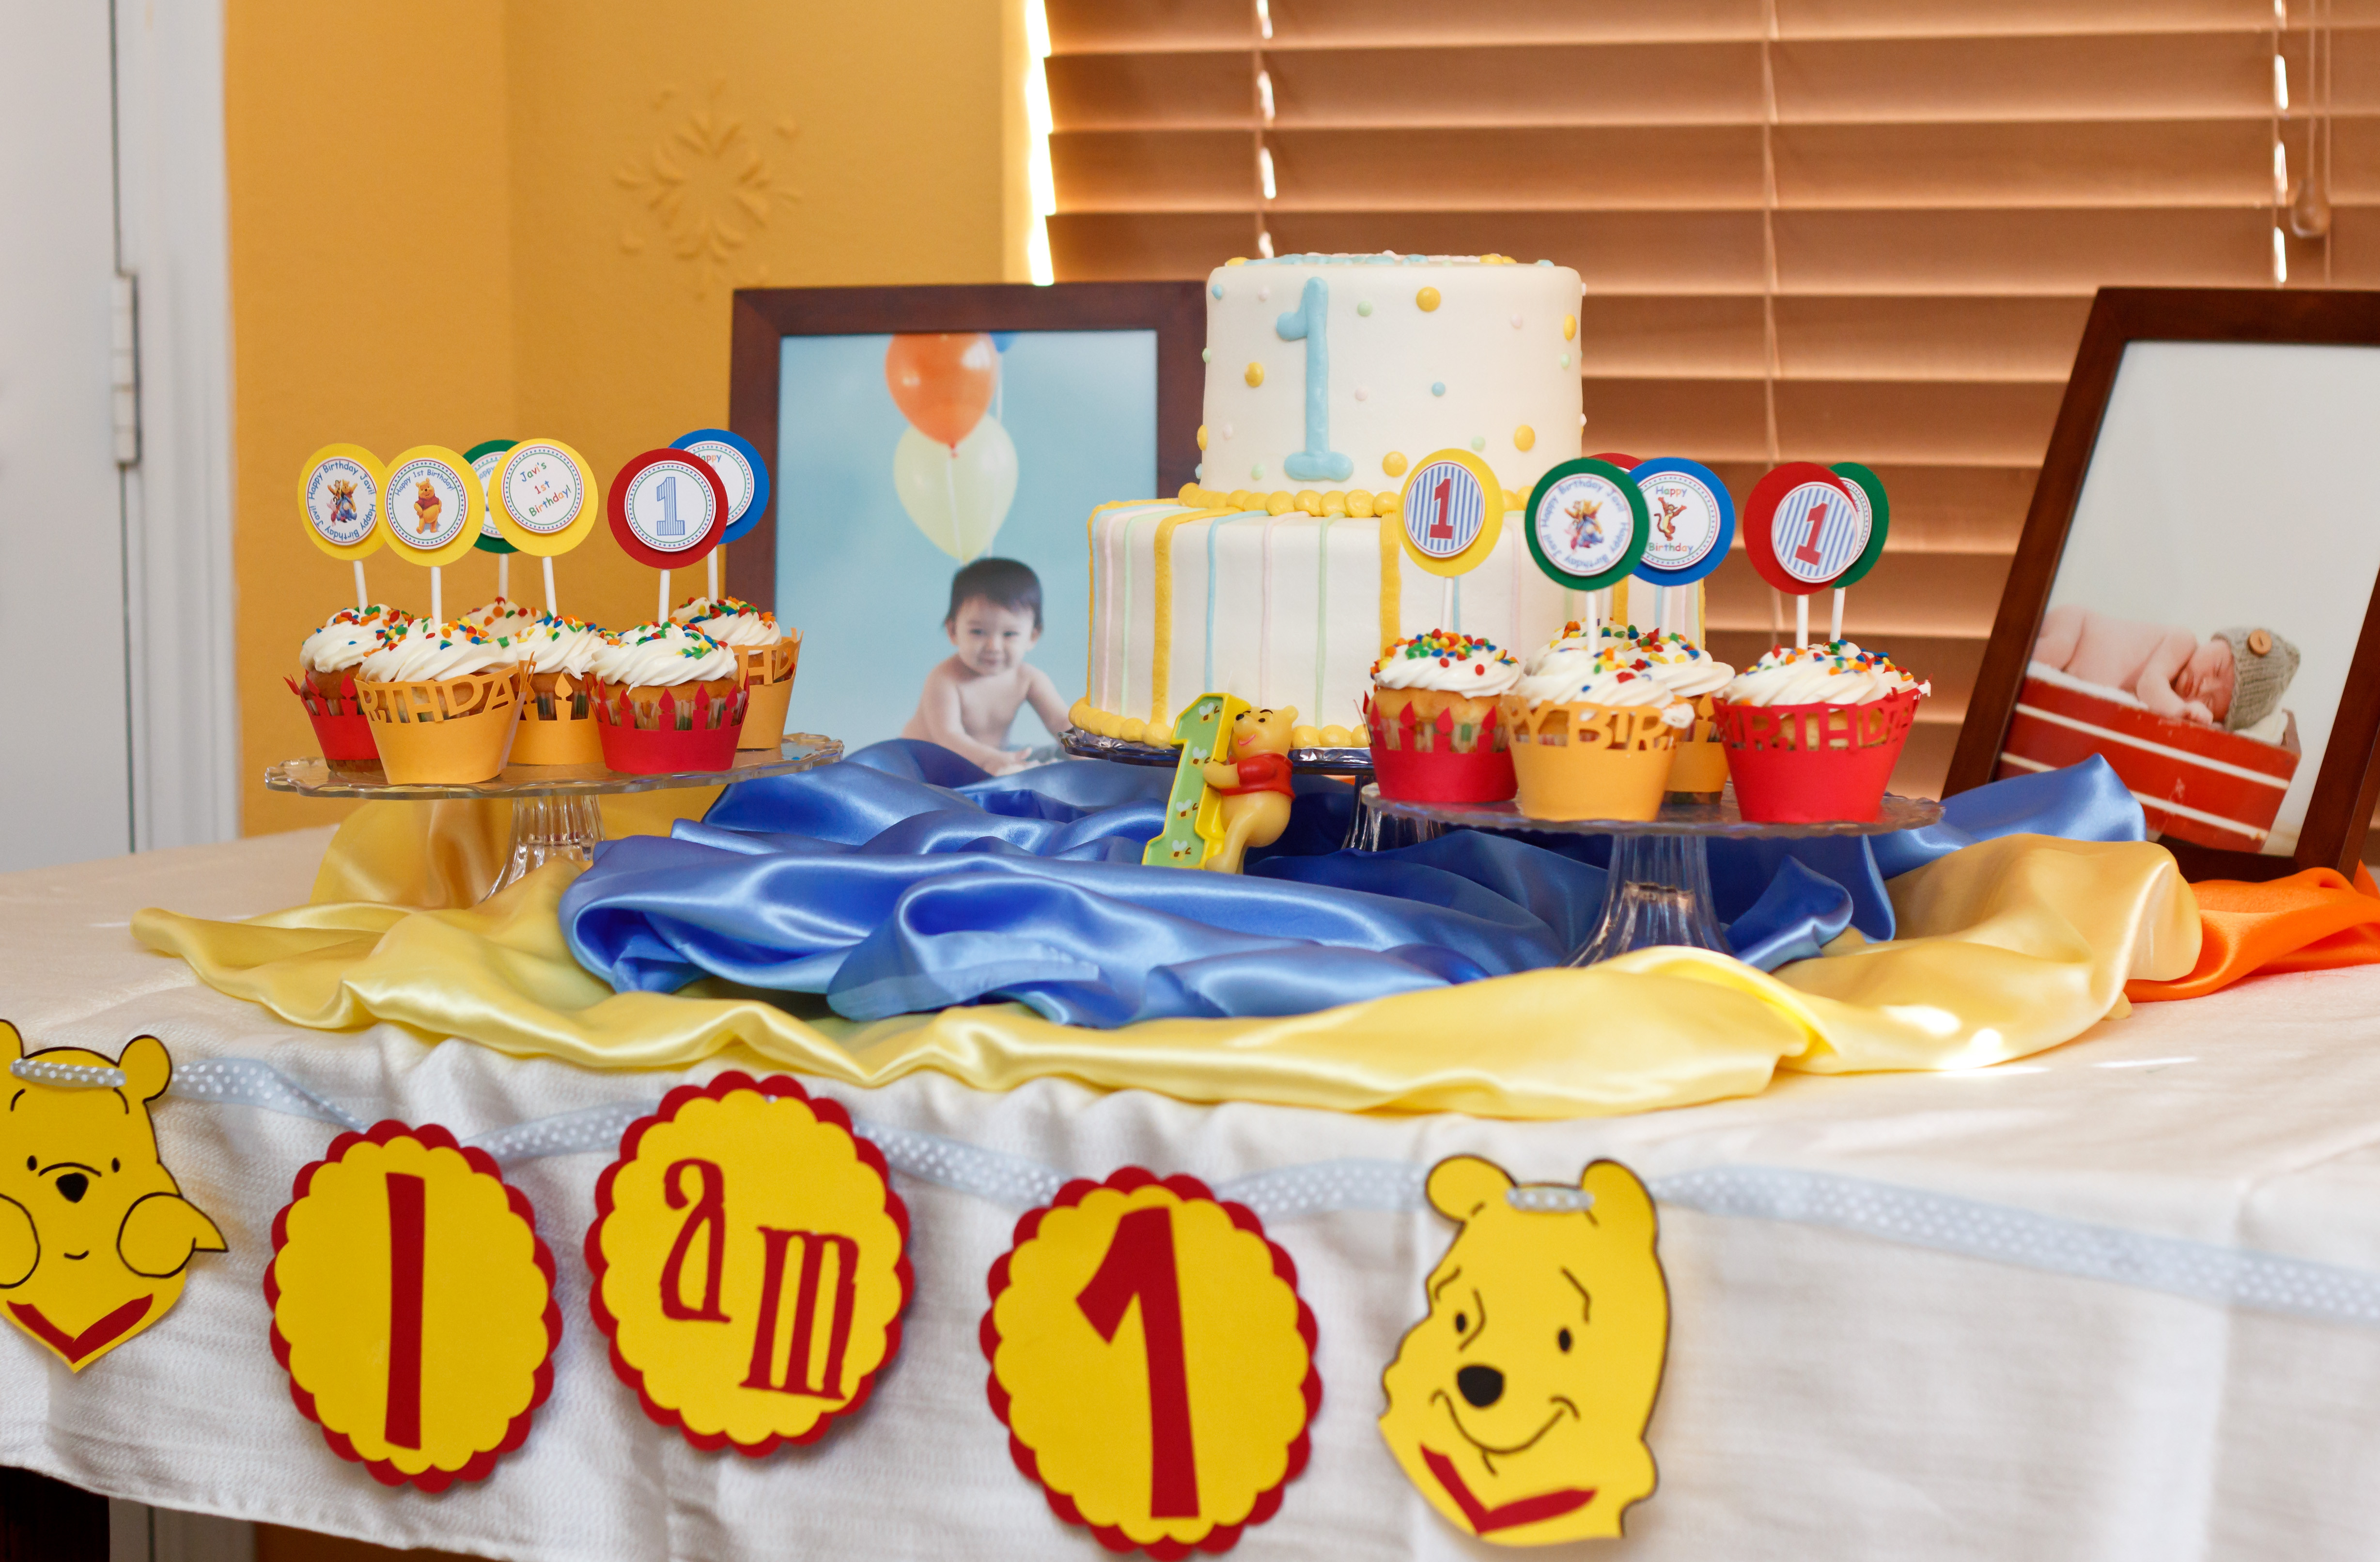 Best ideas about Winnie The Pooh Birthday Decorations . Save or Pin Winnie the Pooh My son's first birthday party Now.